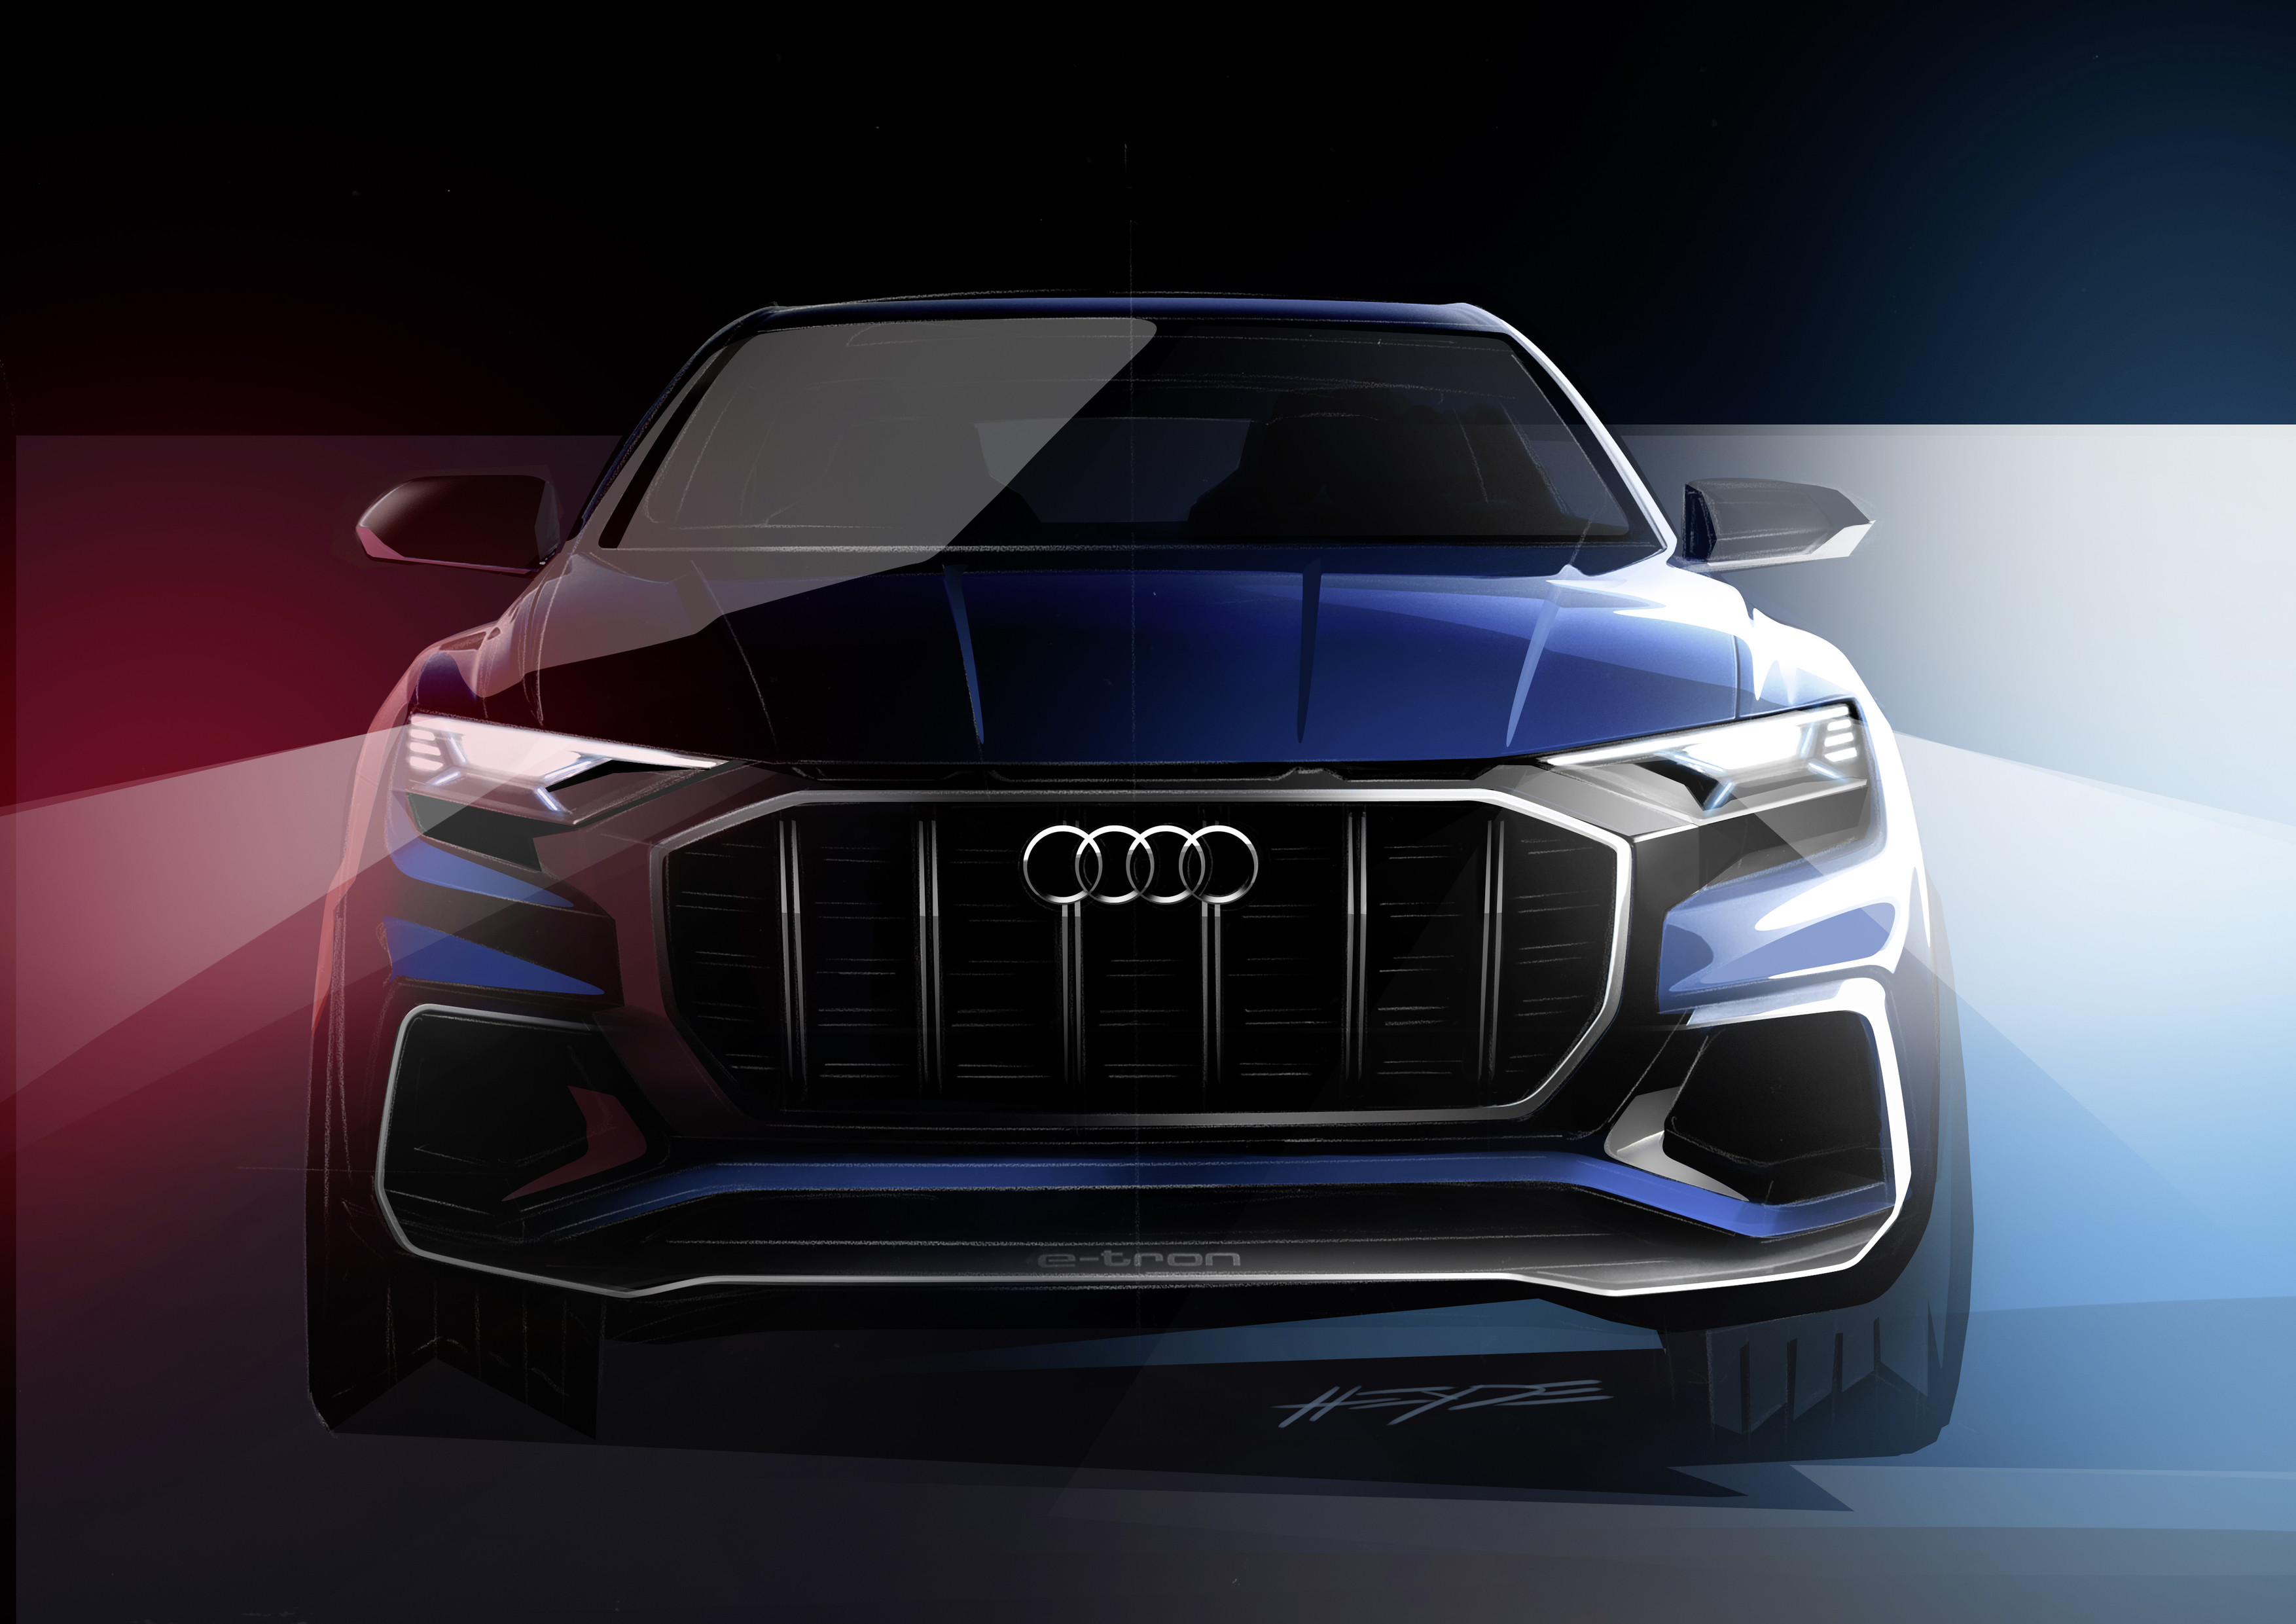 Audi Q8 SUV Coupe Teased Ahead of Detroit 2017 Debut